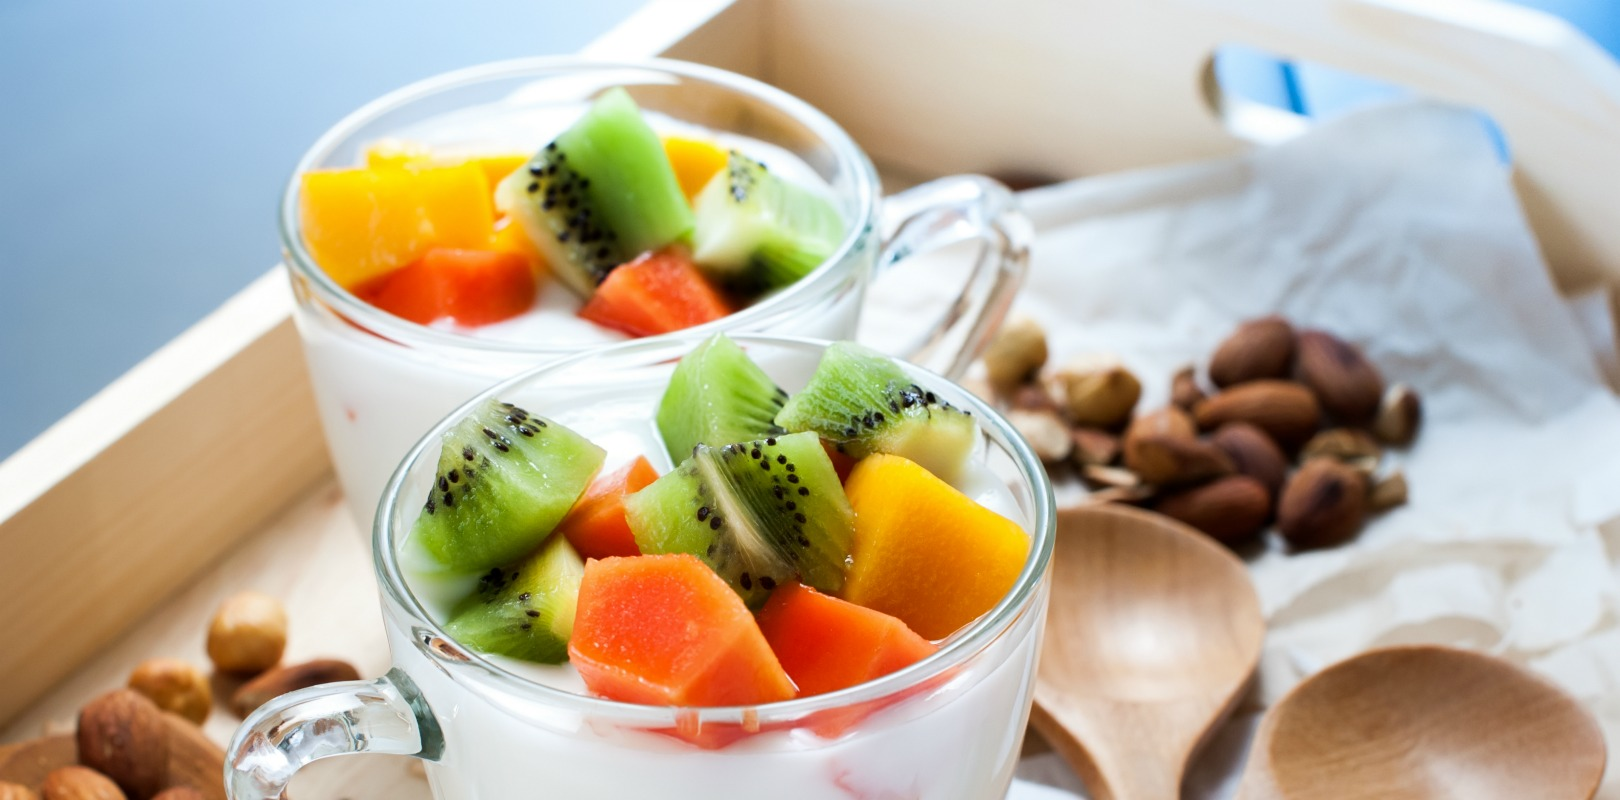 Combine Food With Yogurt For A Satisfying Snack